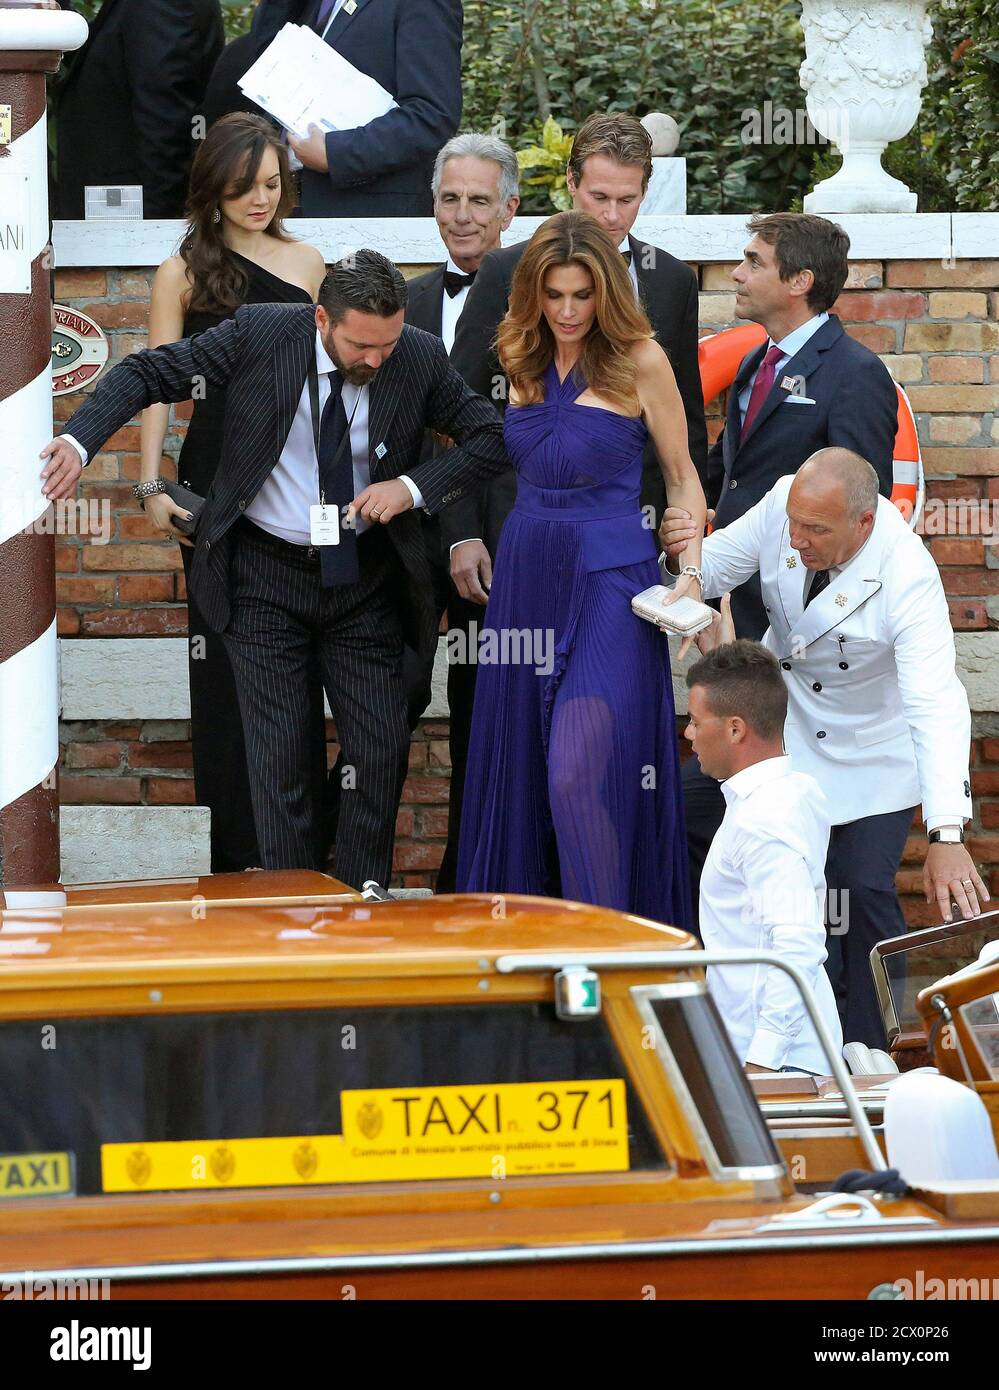 Page 3 George Clooney Wedding High Resolution Stock Photography And Images Alamy